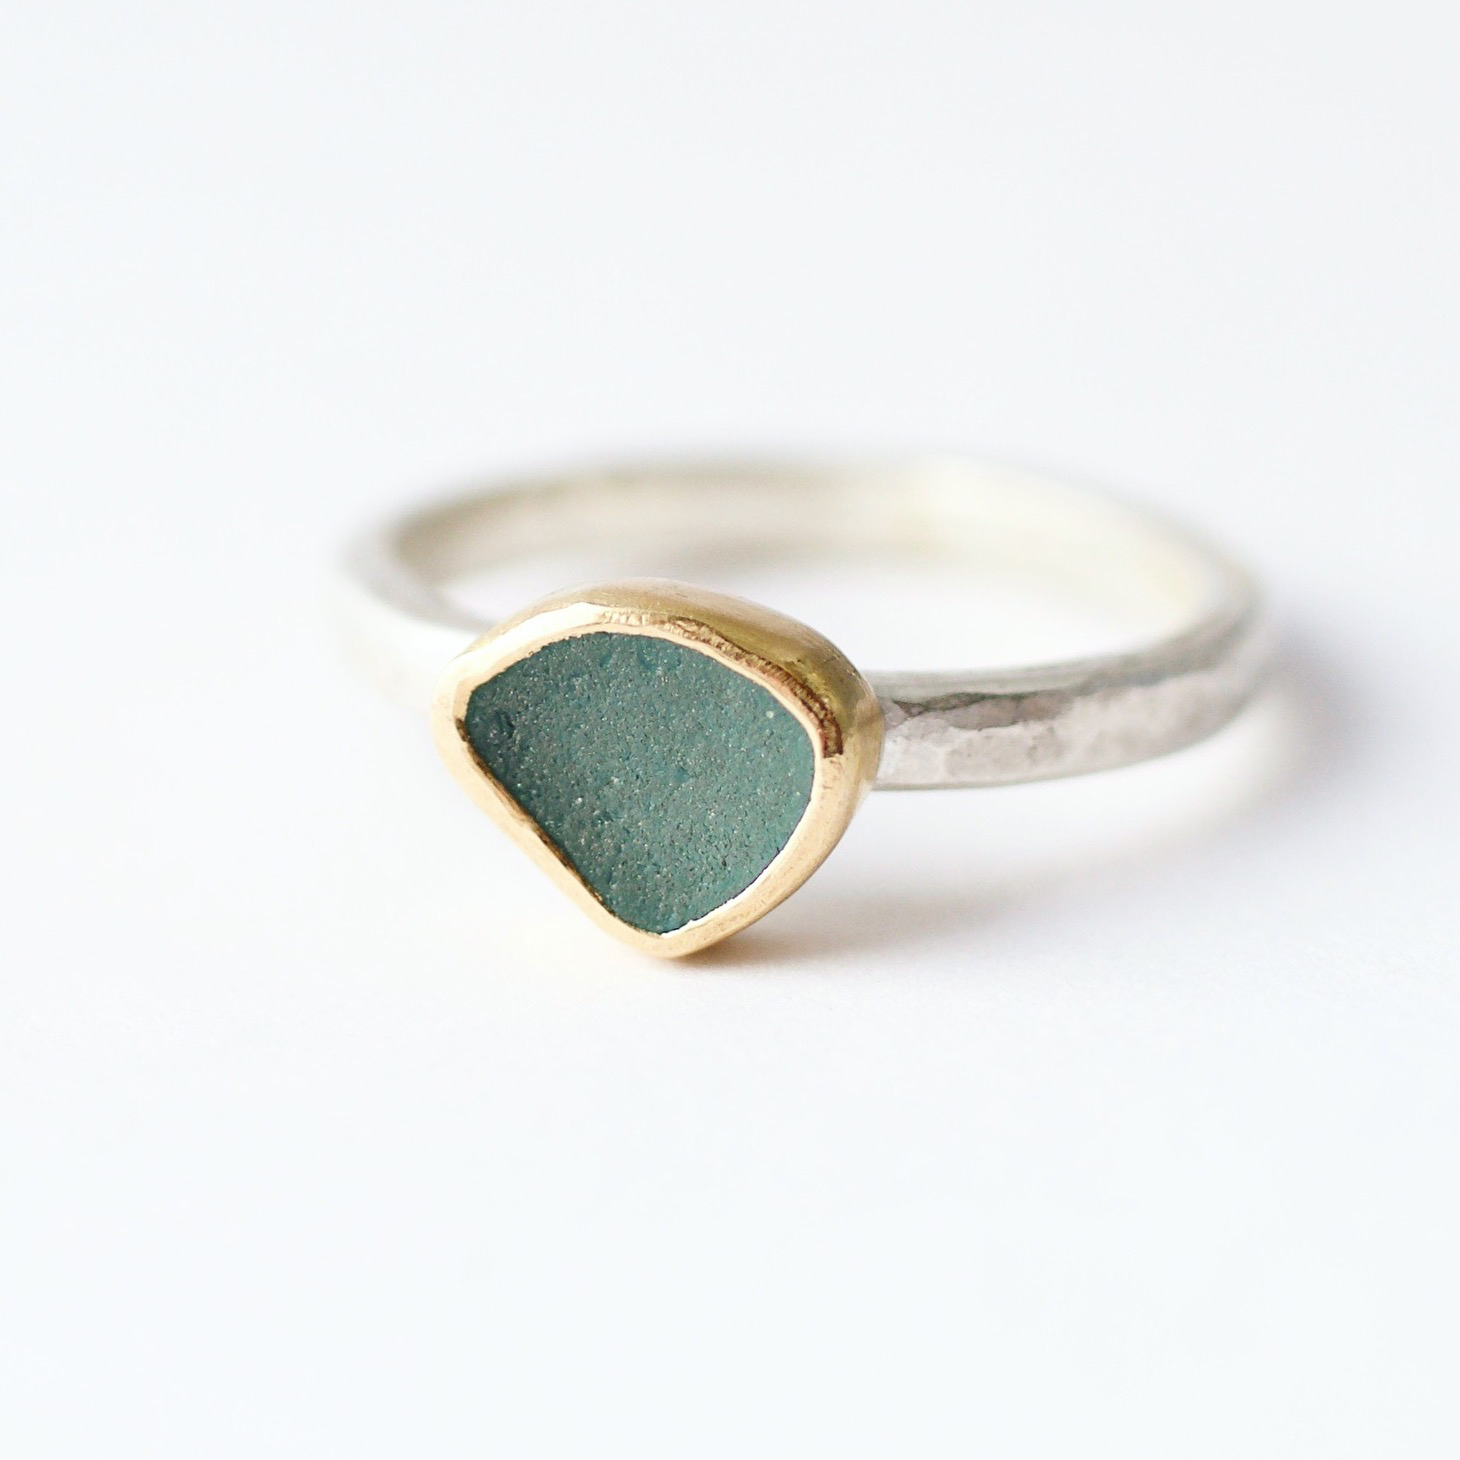 Silver band & 18ct yellow gold setting